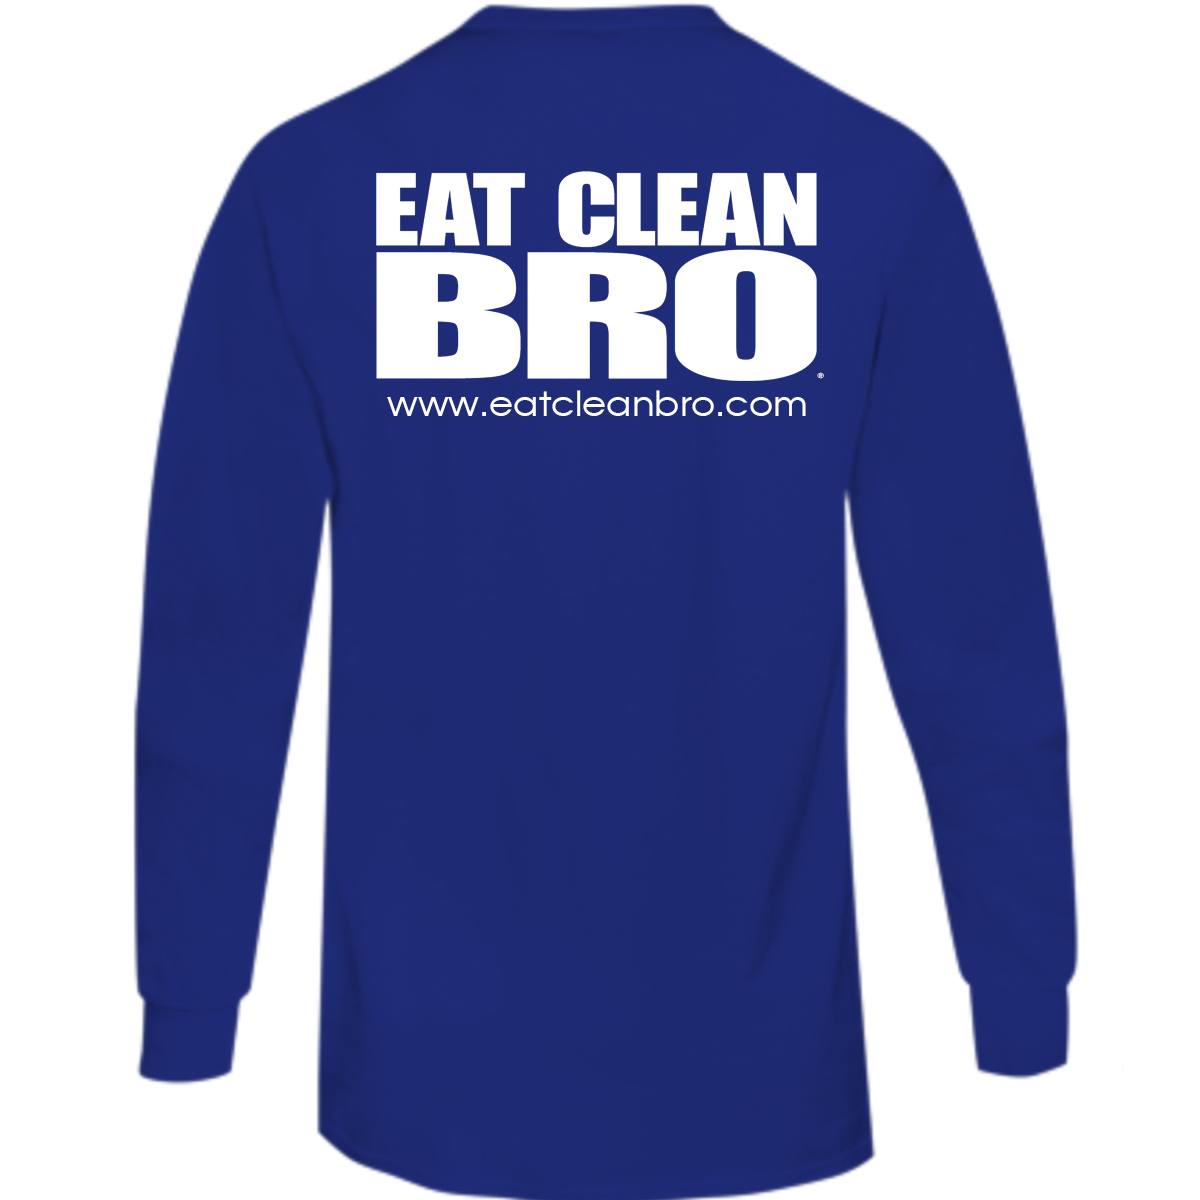 Eat Clean Bro BRO Long Sleeved T-Shirt - Royal Blue